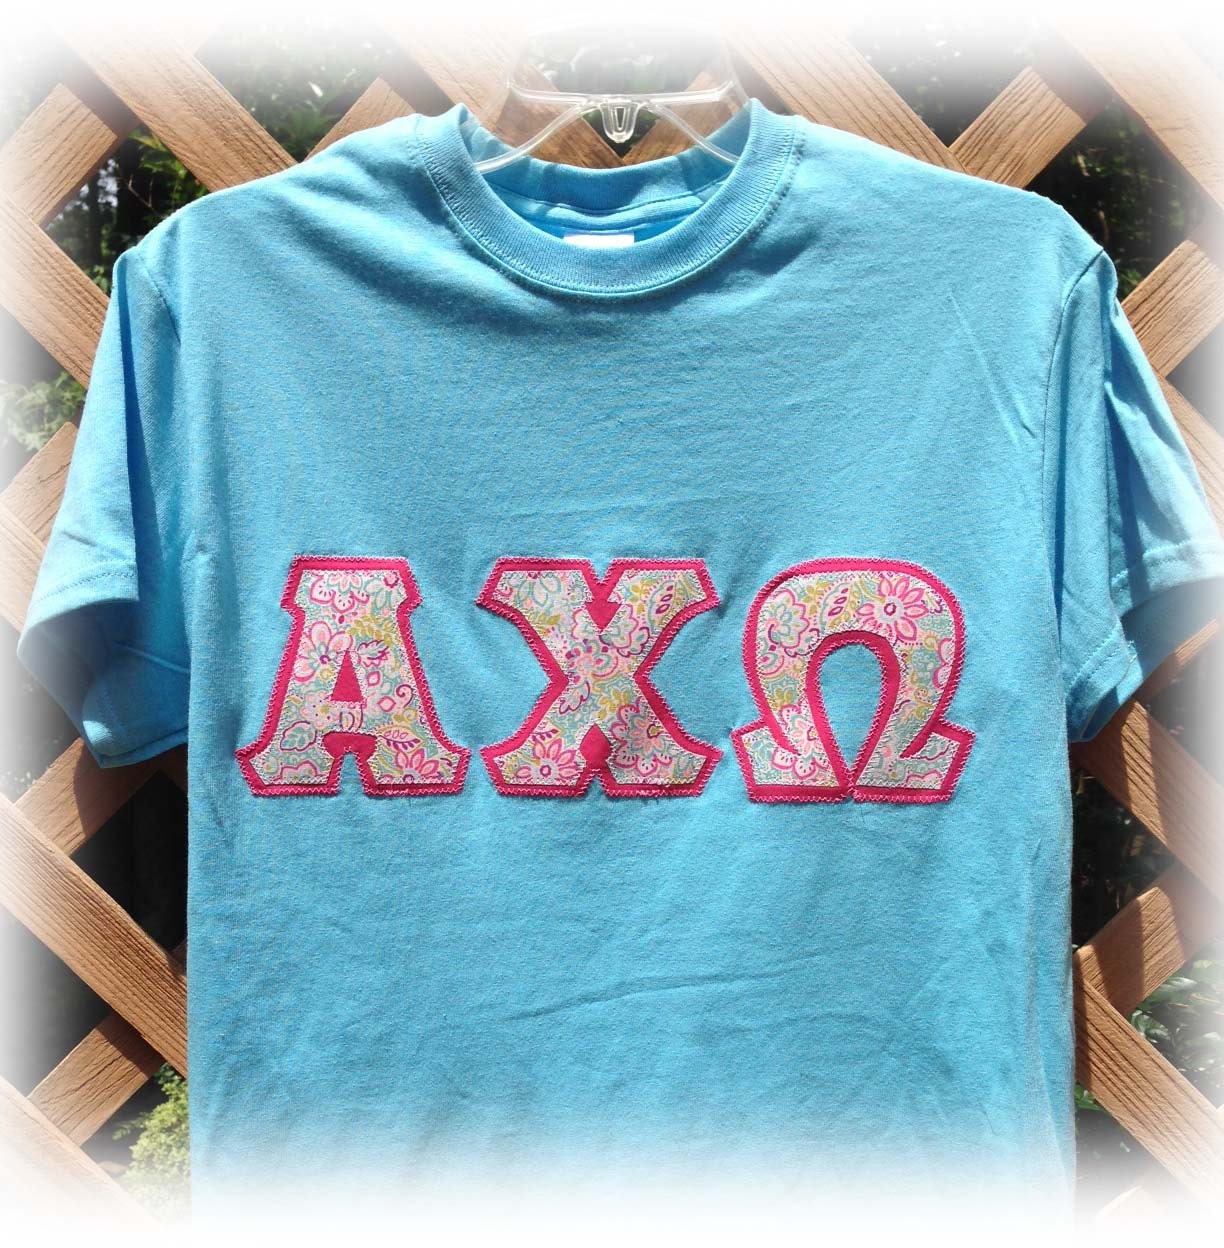 Items similar to Greek Stitch Letter Shirt on Etsy